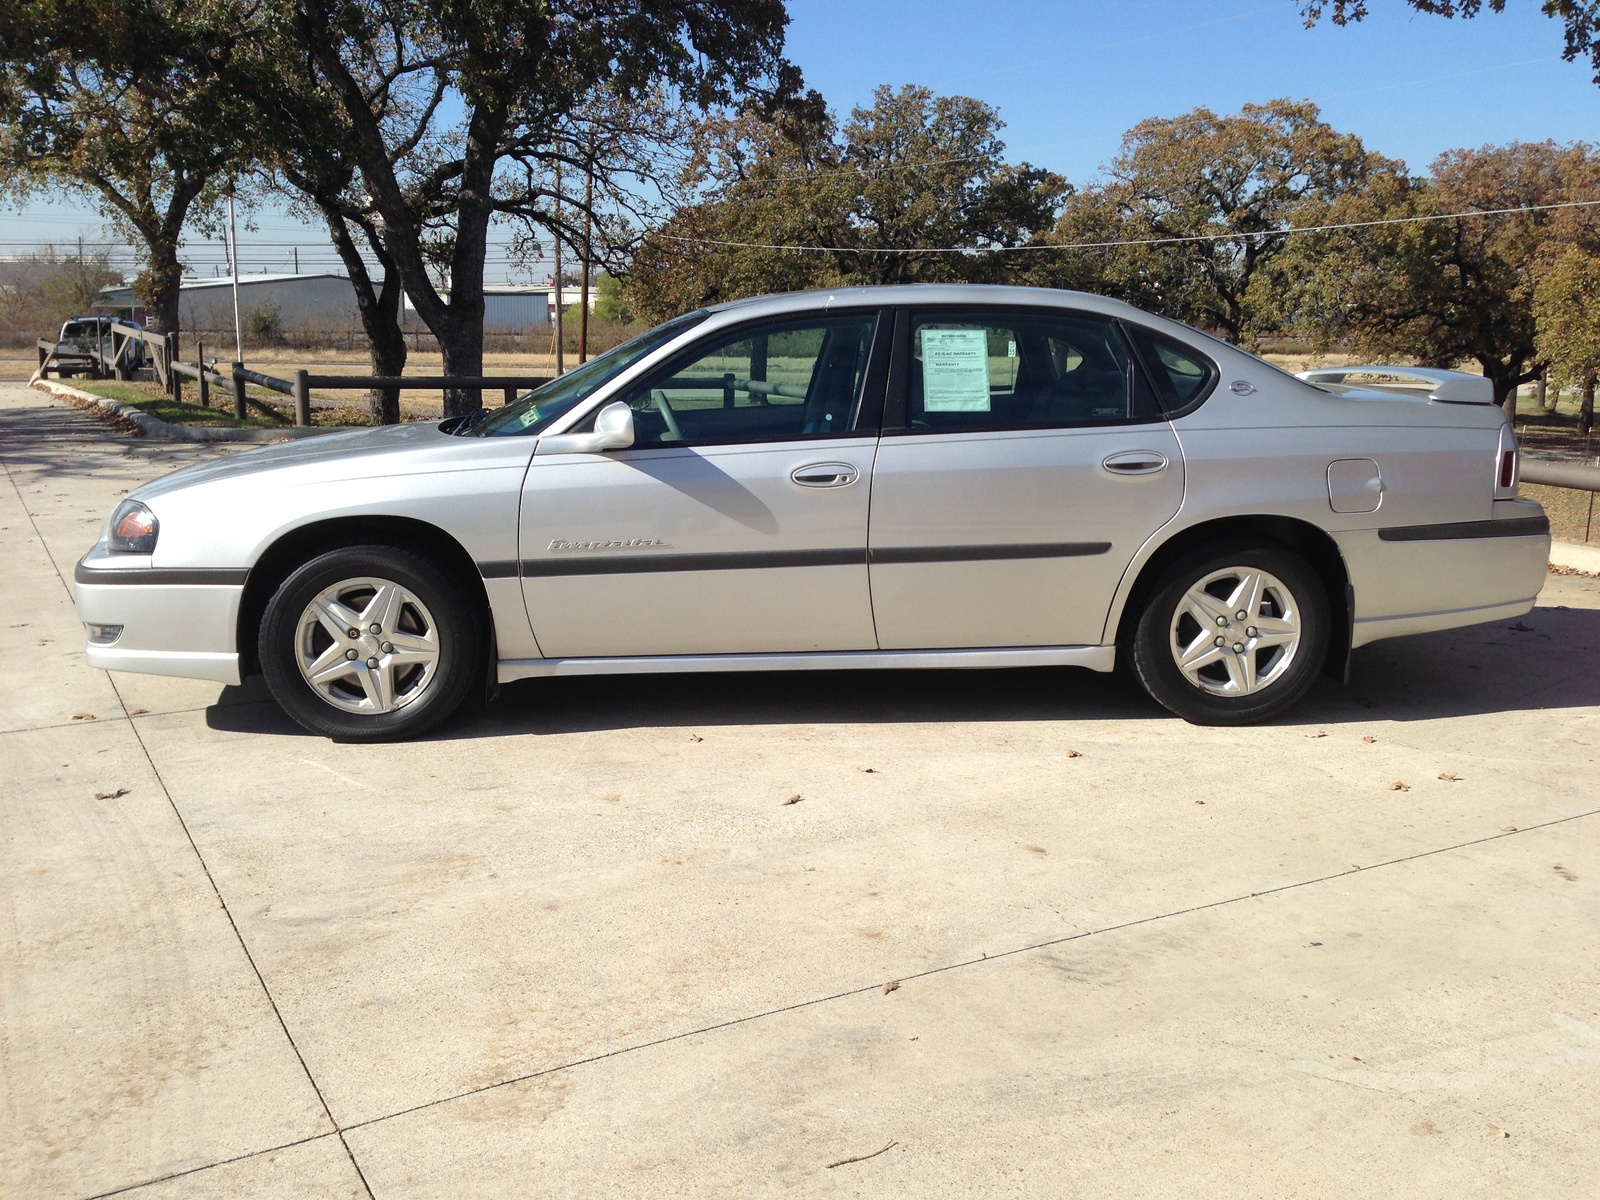 2002 chevrolet impala exterior pictures cargurus. Cars Review. Best American Auto & Cars Review